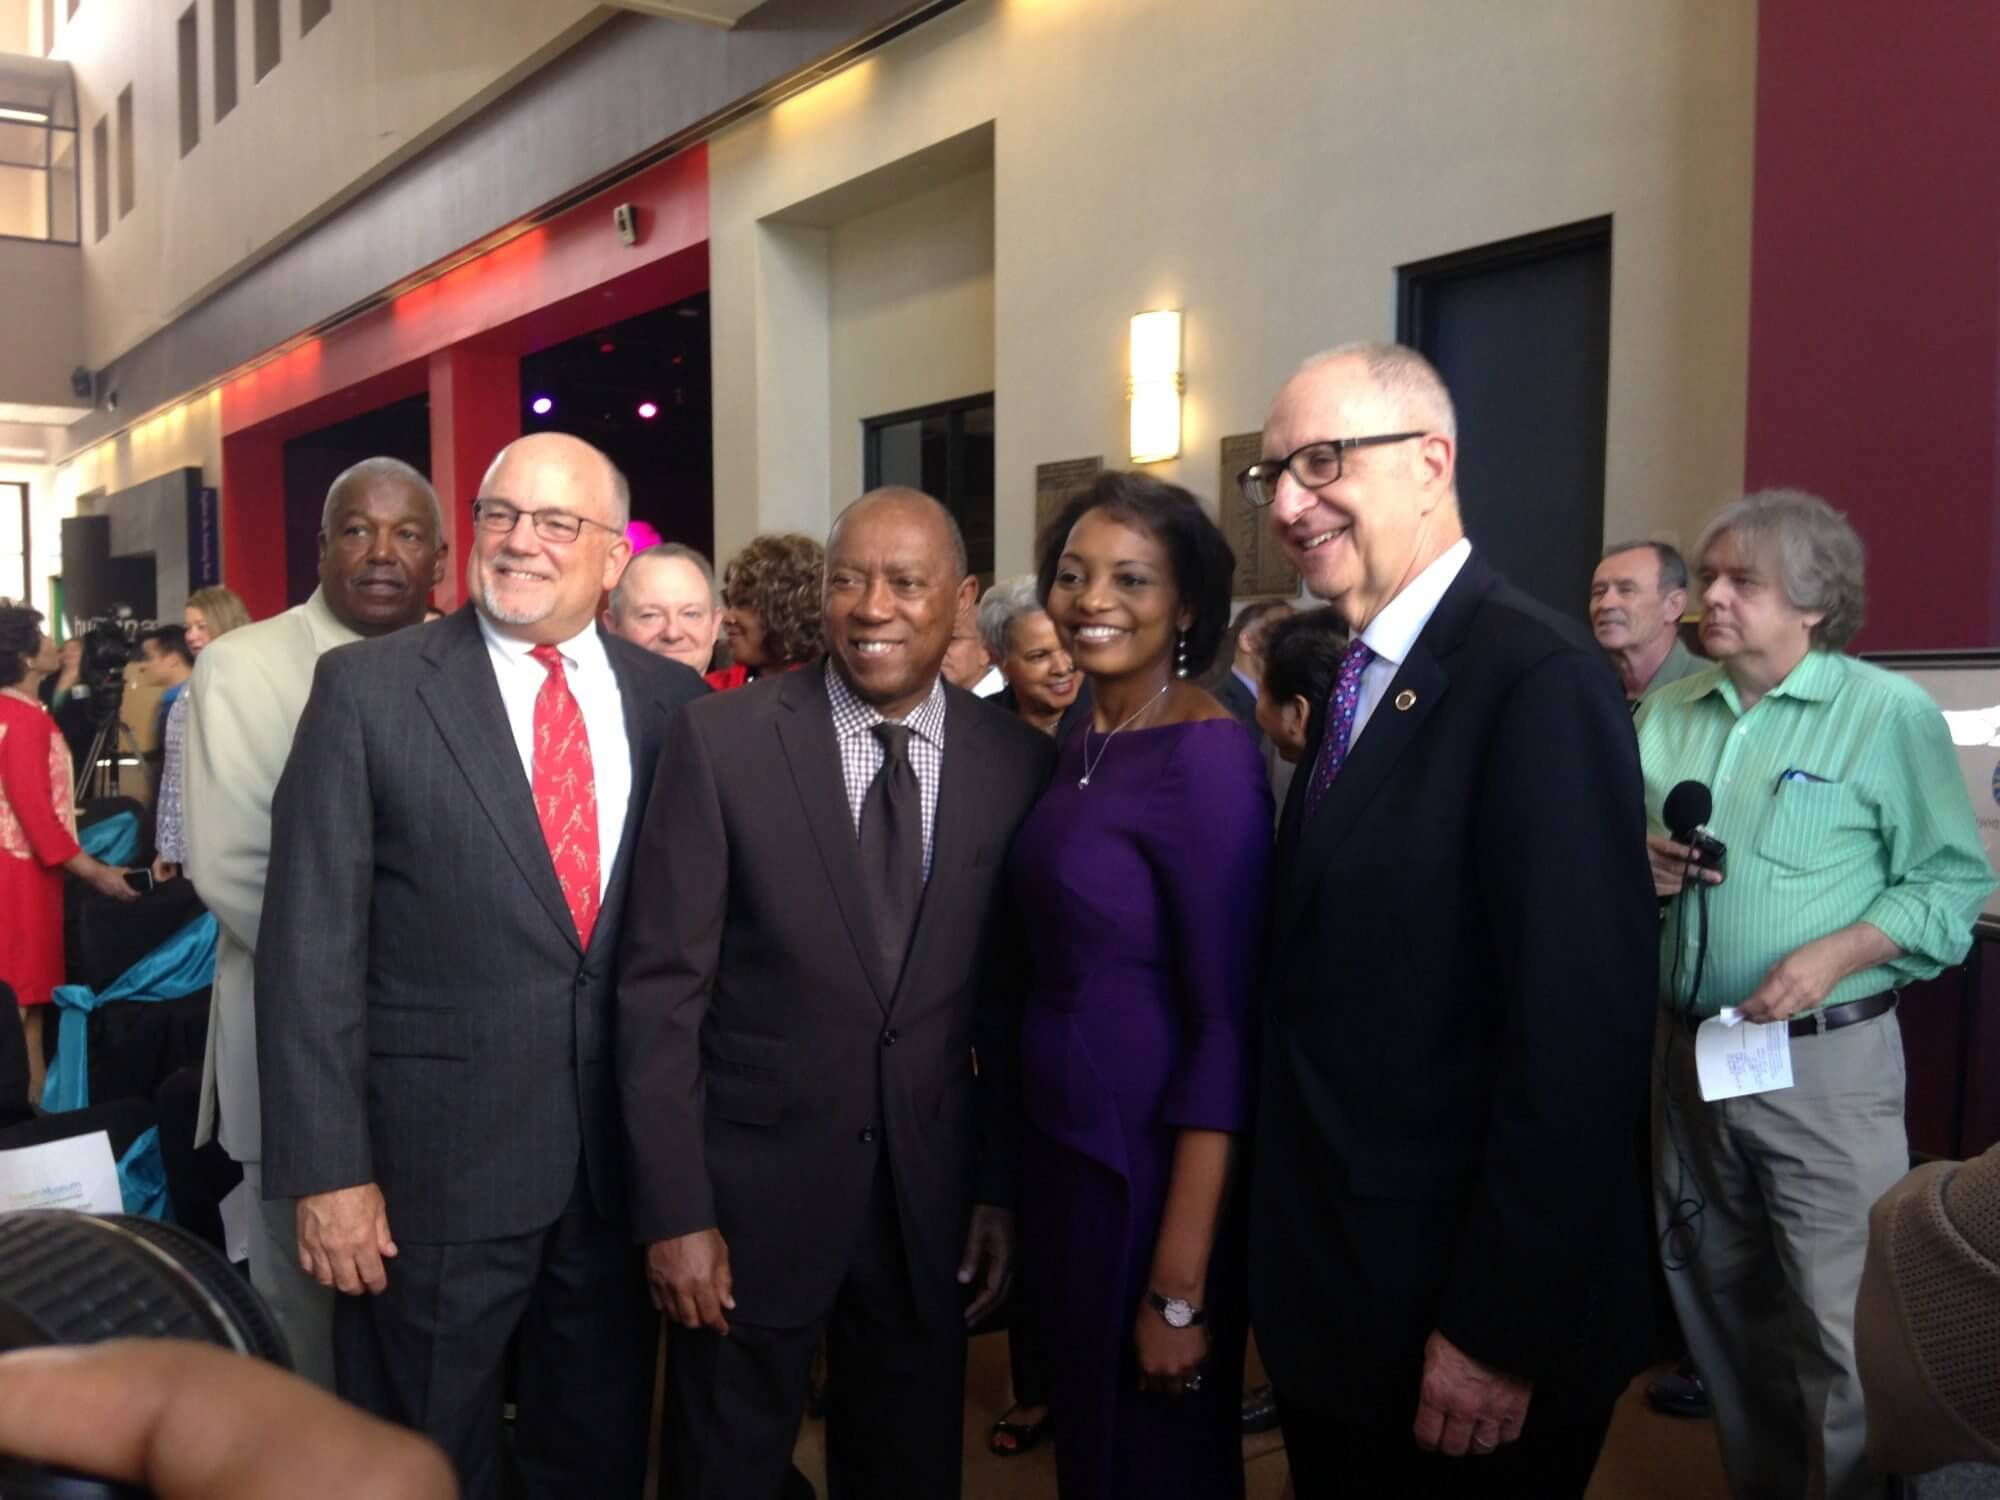 At a ceremony celebrating The Health Museum's new status as a Smithsonian Affiliate, Chair of the Board of Directors of the John P. McGovern Museum of Health & Medical Science Brian S. Parsley, M.D.; Houston Mayor Sylvester Turner; President and CEO of The Health Museum Melanie Johnson, Ed.D.; and Smithsonian Secretary David Skorton.